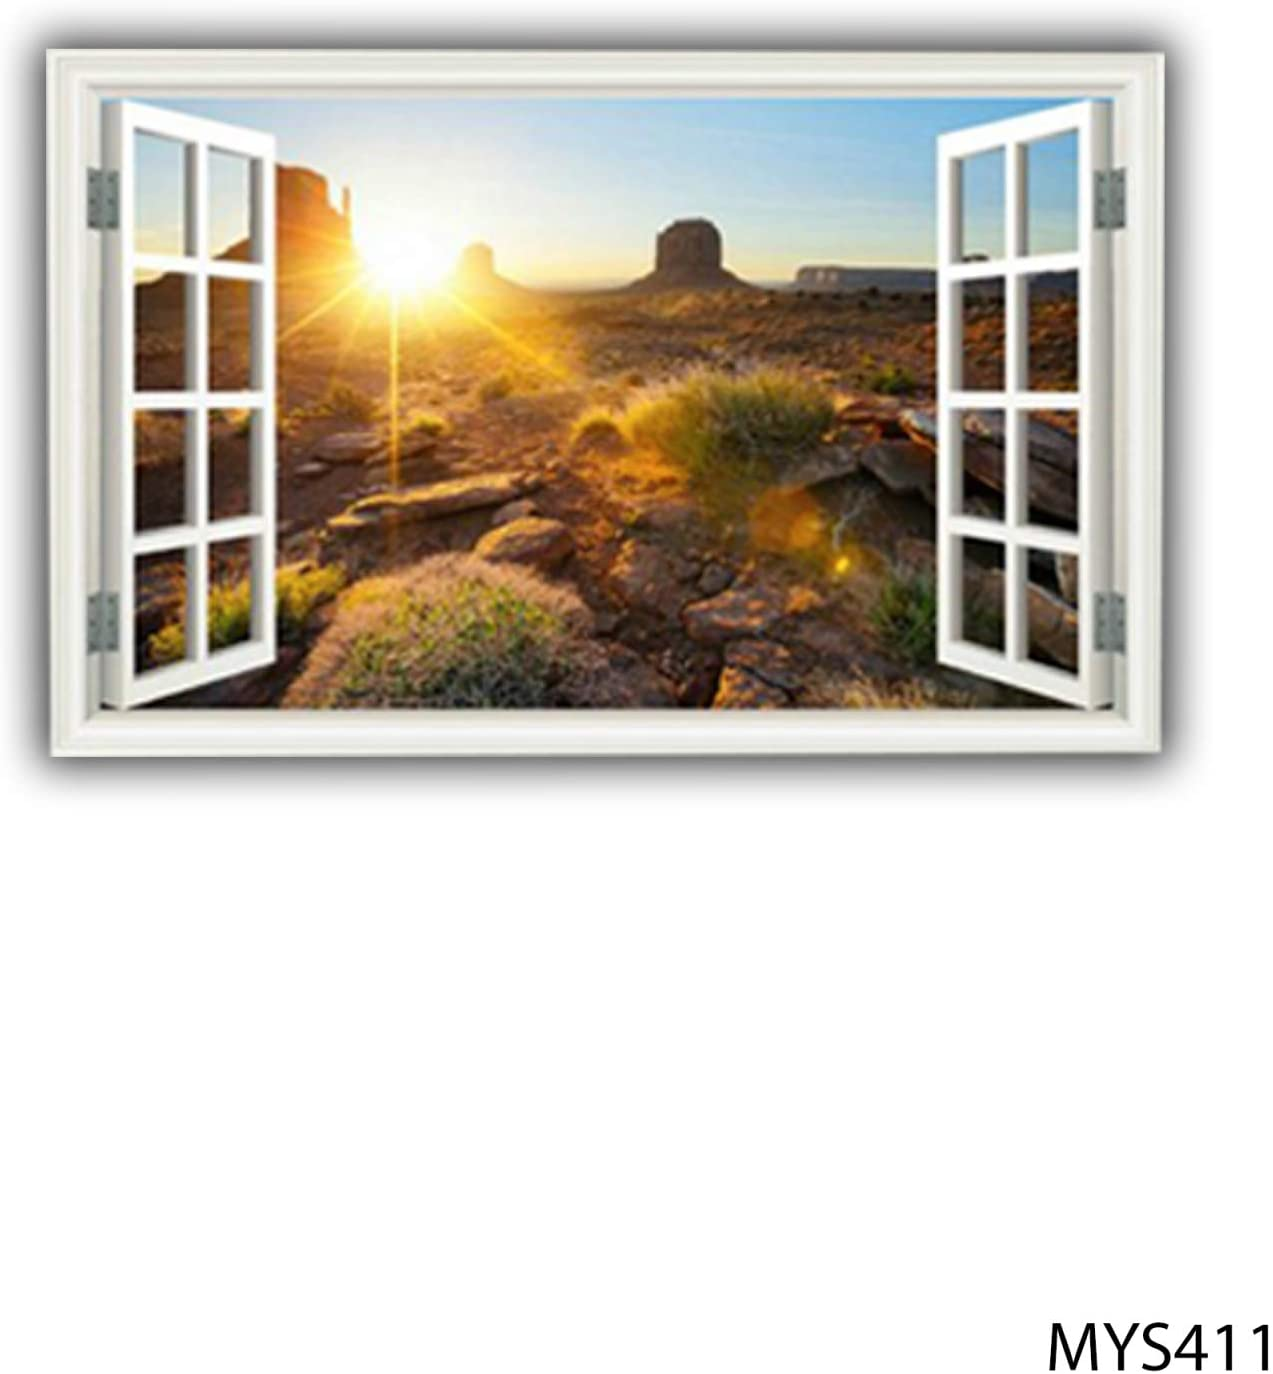 MySticky 3D Landscapes and Nature Fake Window Frame Wall Decal | Removable Vinyl Sticker | Peel and Stick | Art Decor for Bedroom, Kitchen, Kids or Any Room (MYS411-Small)